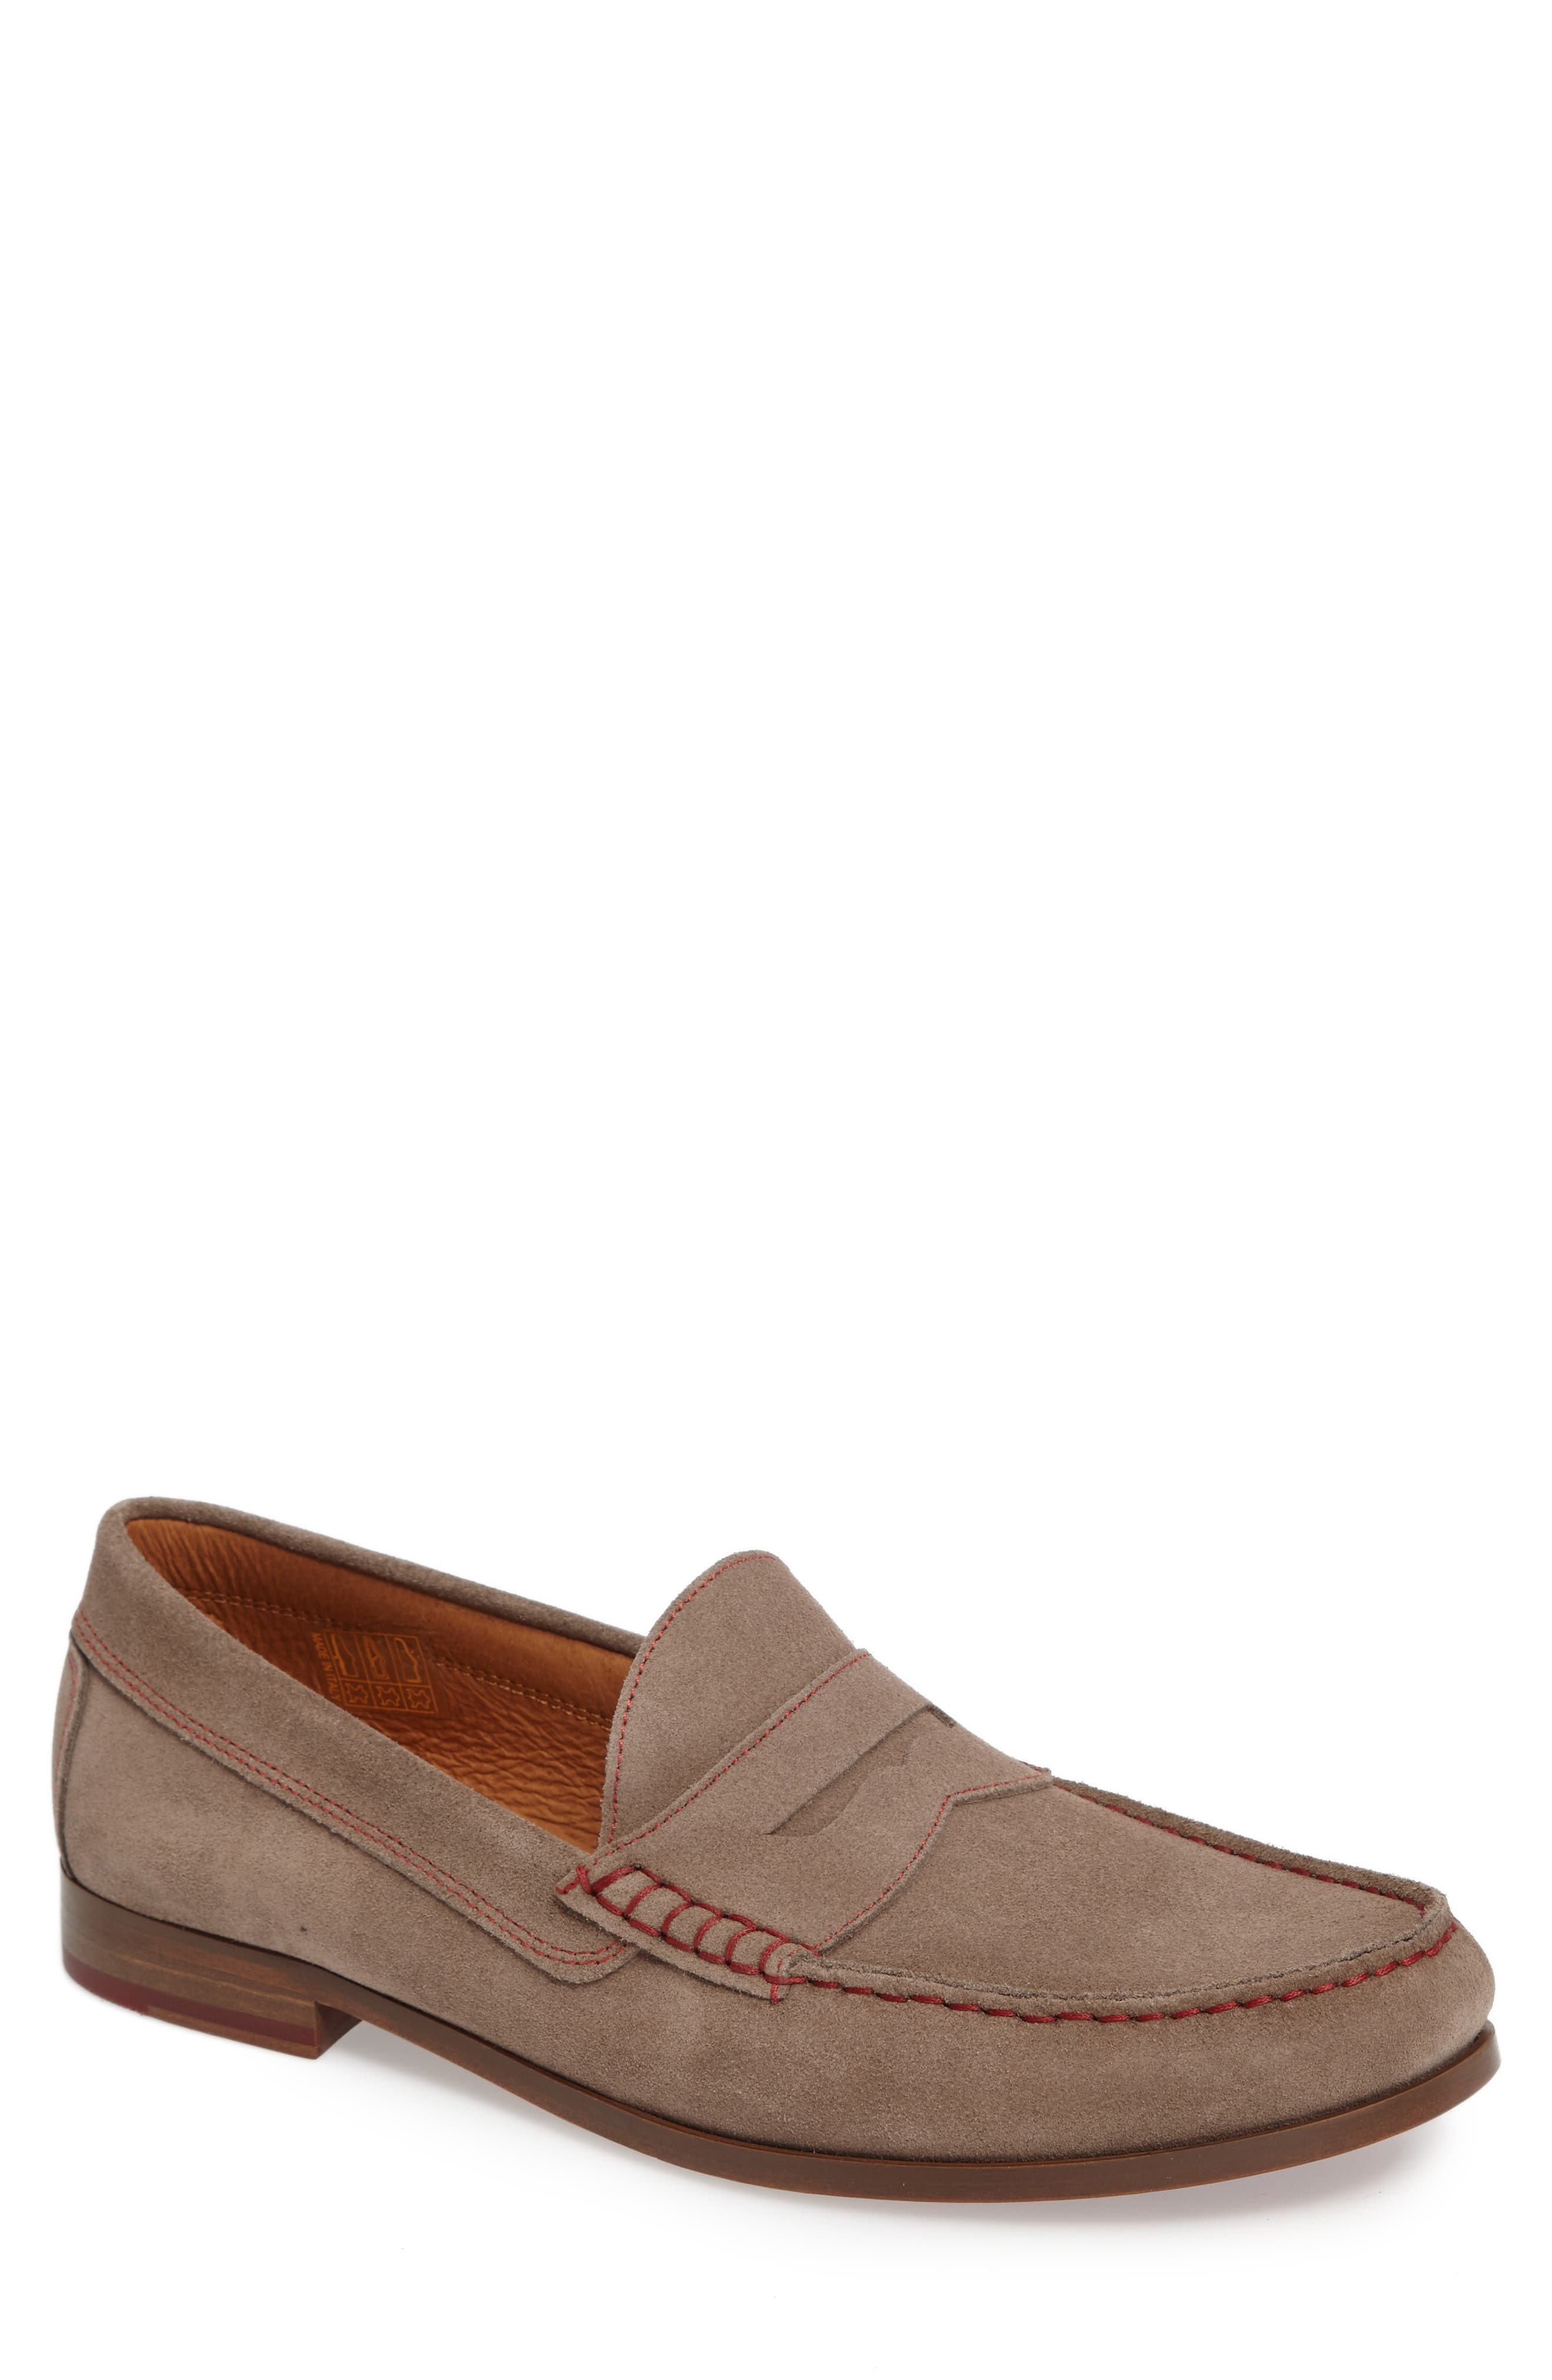 Nicola Penny Loafer,                             Main thumbnail 8, color,